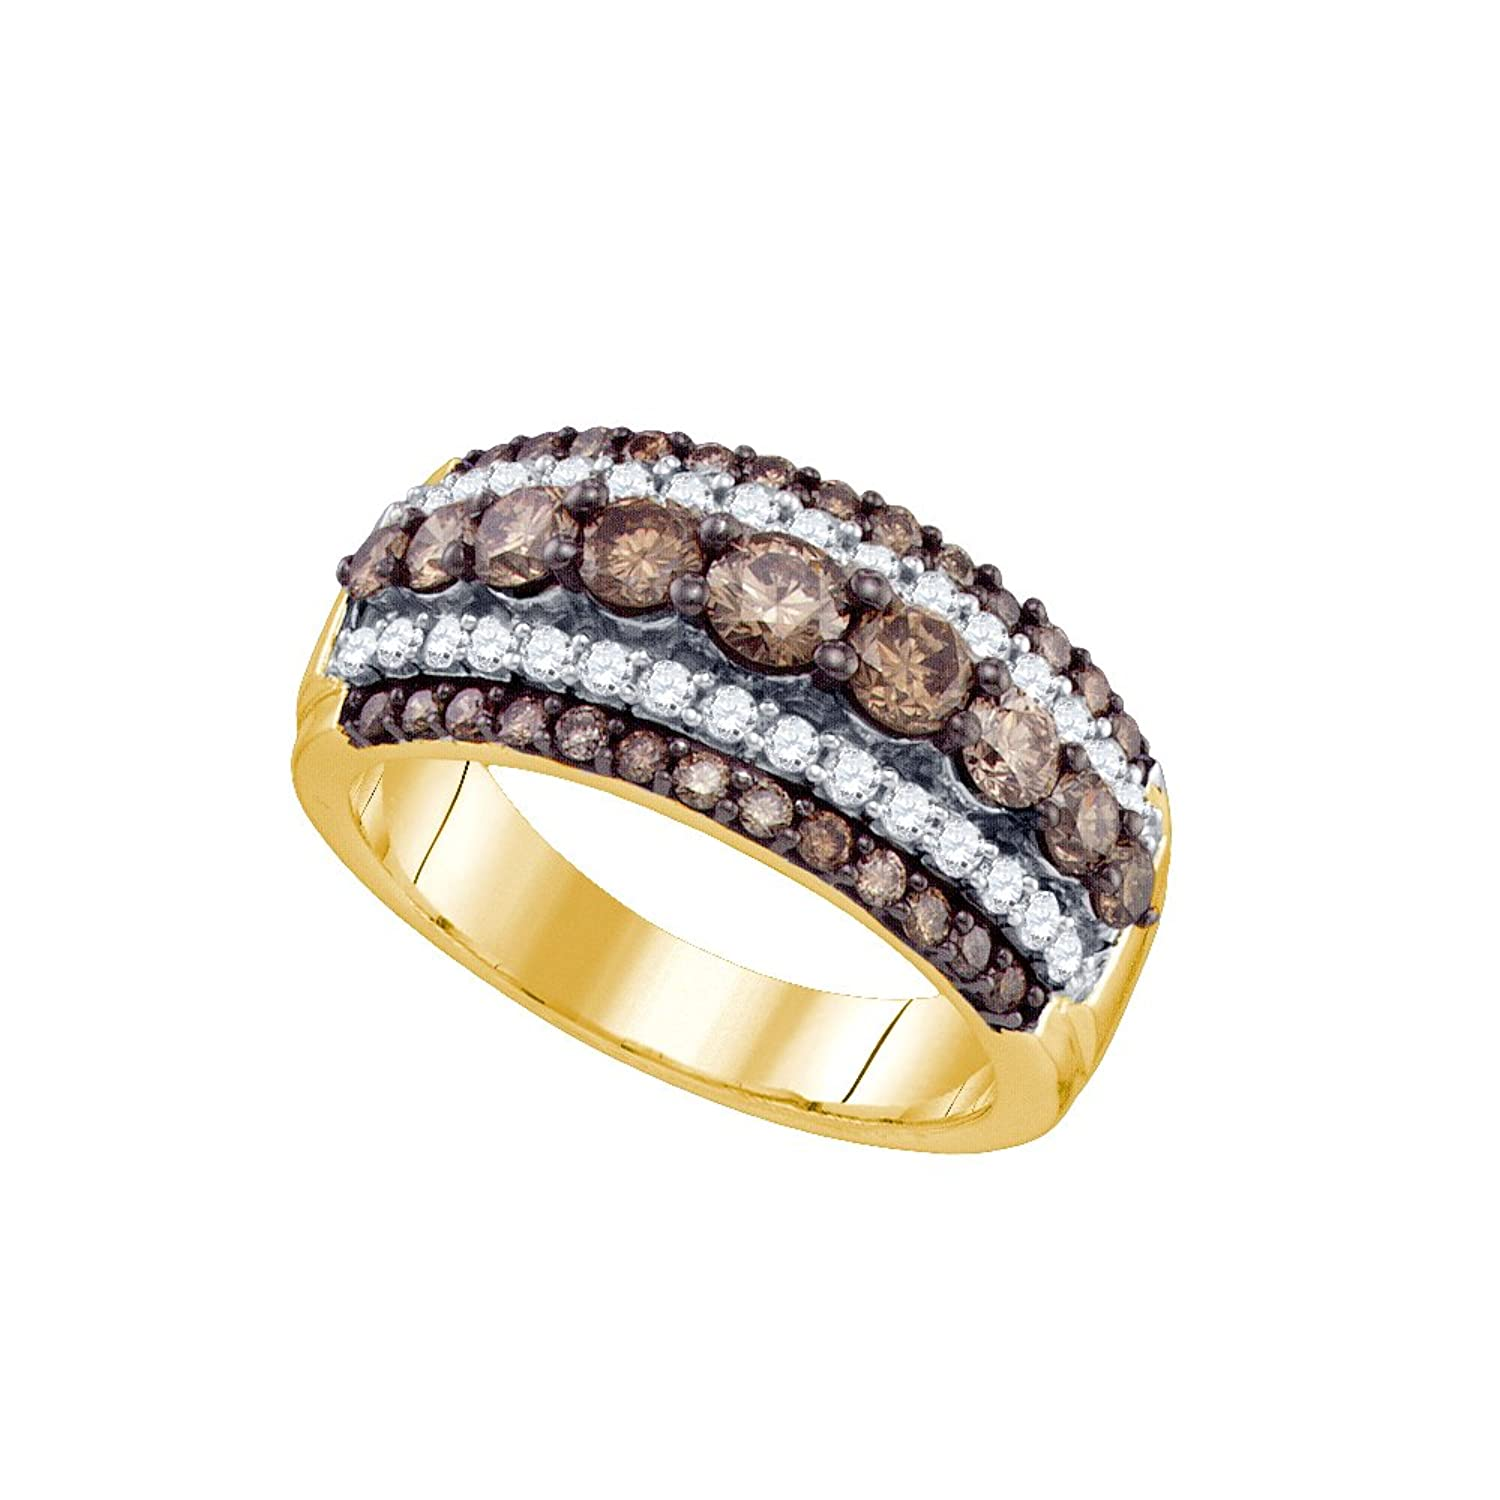 10K Yellow Gold Channel Set Round Cut Chocolate Brown and White Diamond Ladies Womens Wedding Band OR Anniversary Ring (1.59 cttw.)